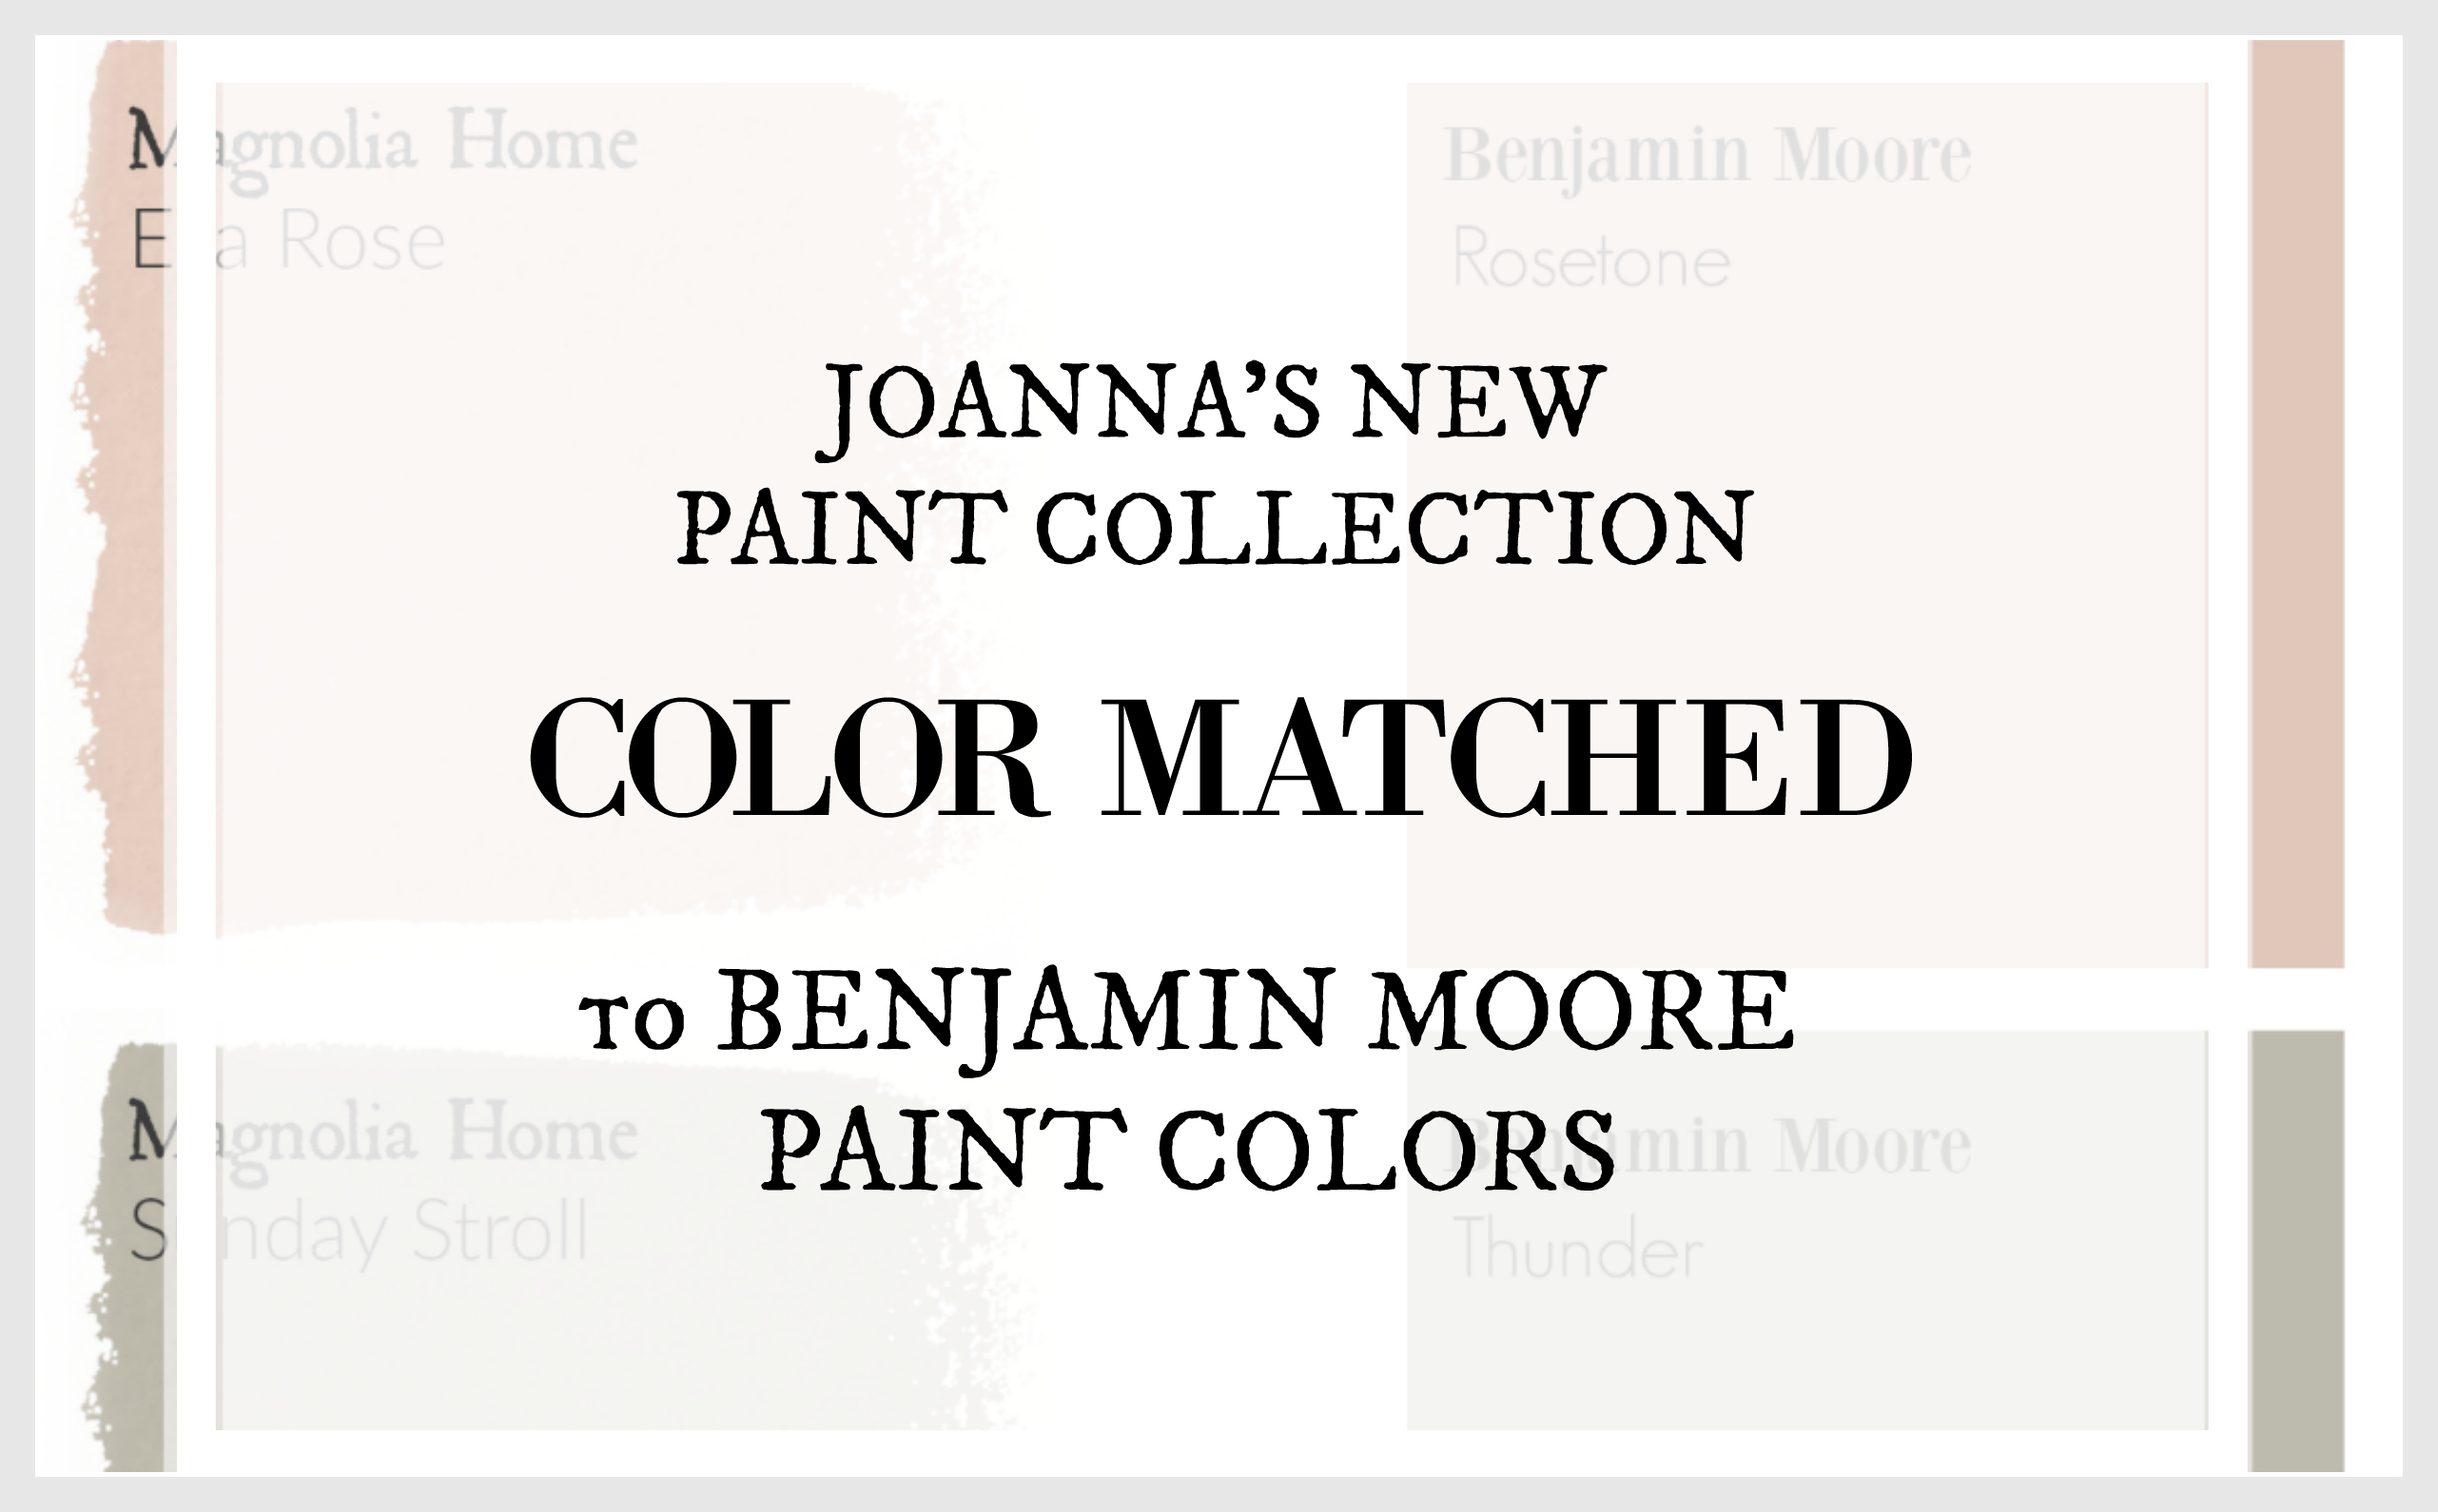 Fixer Upper Paint Colors: Magnolia Home Paint Color Matched to ...